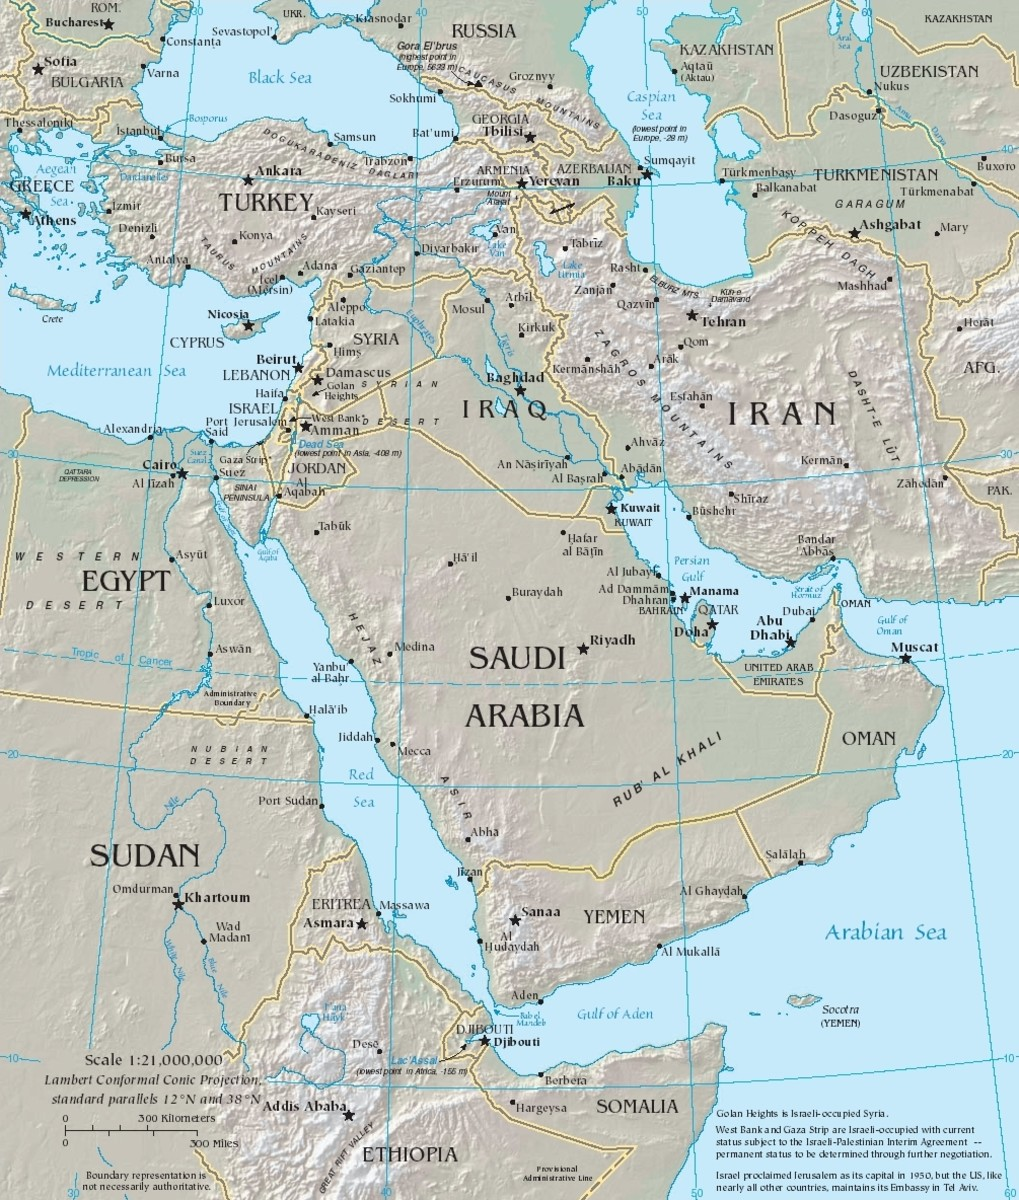 Map showing conventional or traditional definition of the Middle East, with Egypt, Turkey, Yemen, and Iran as border countries.